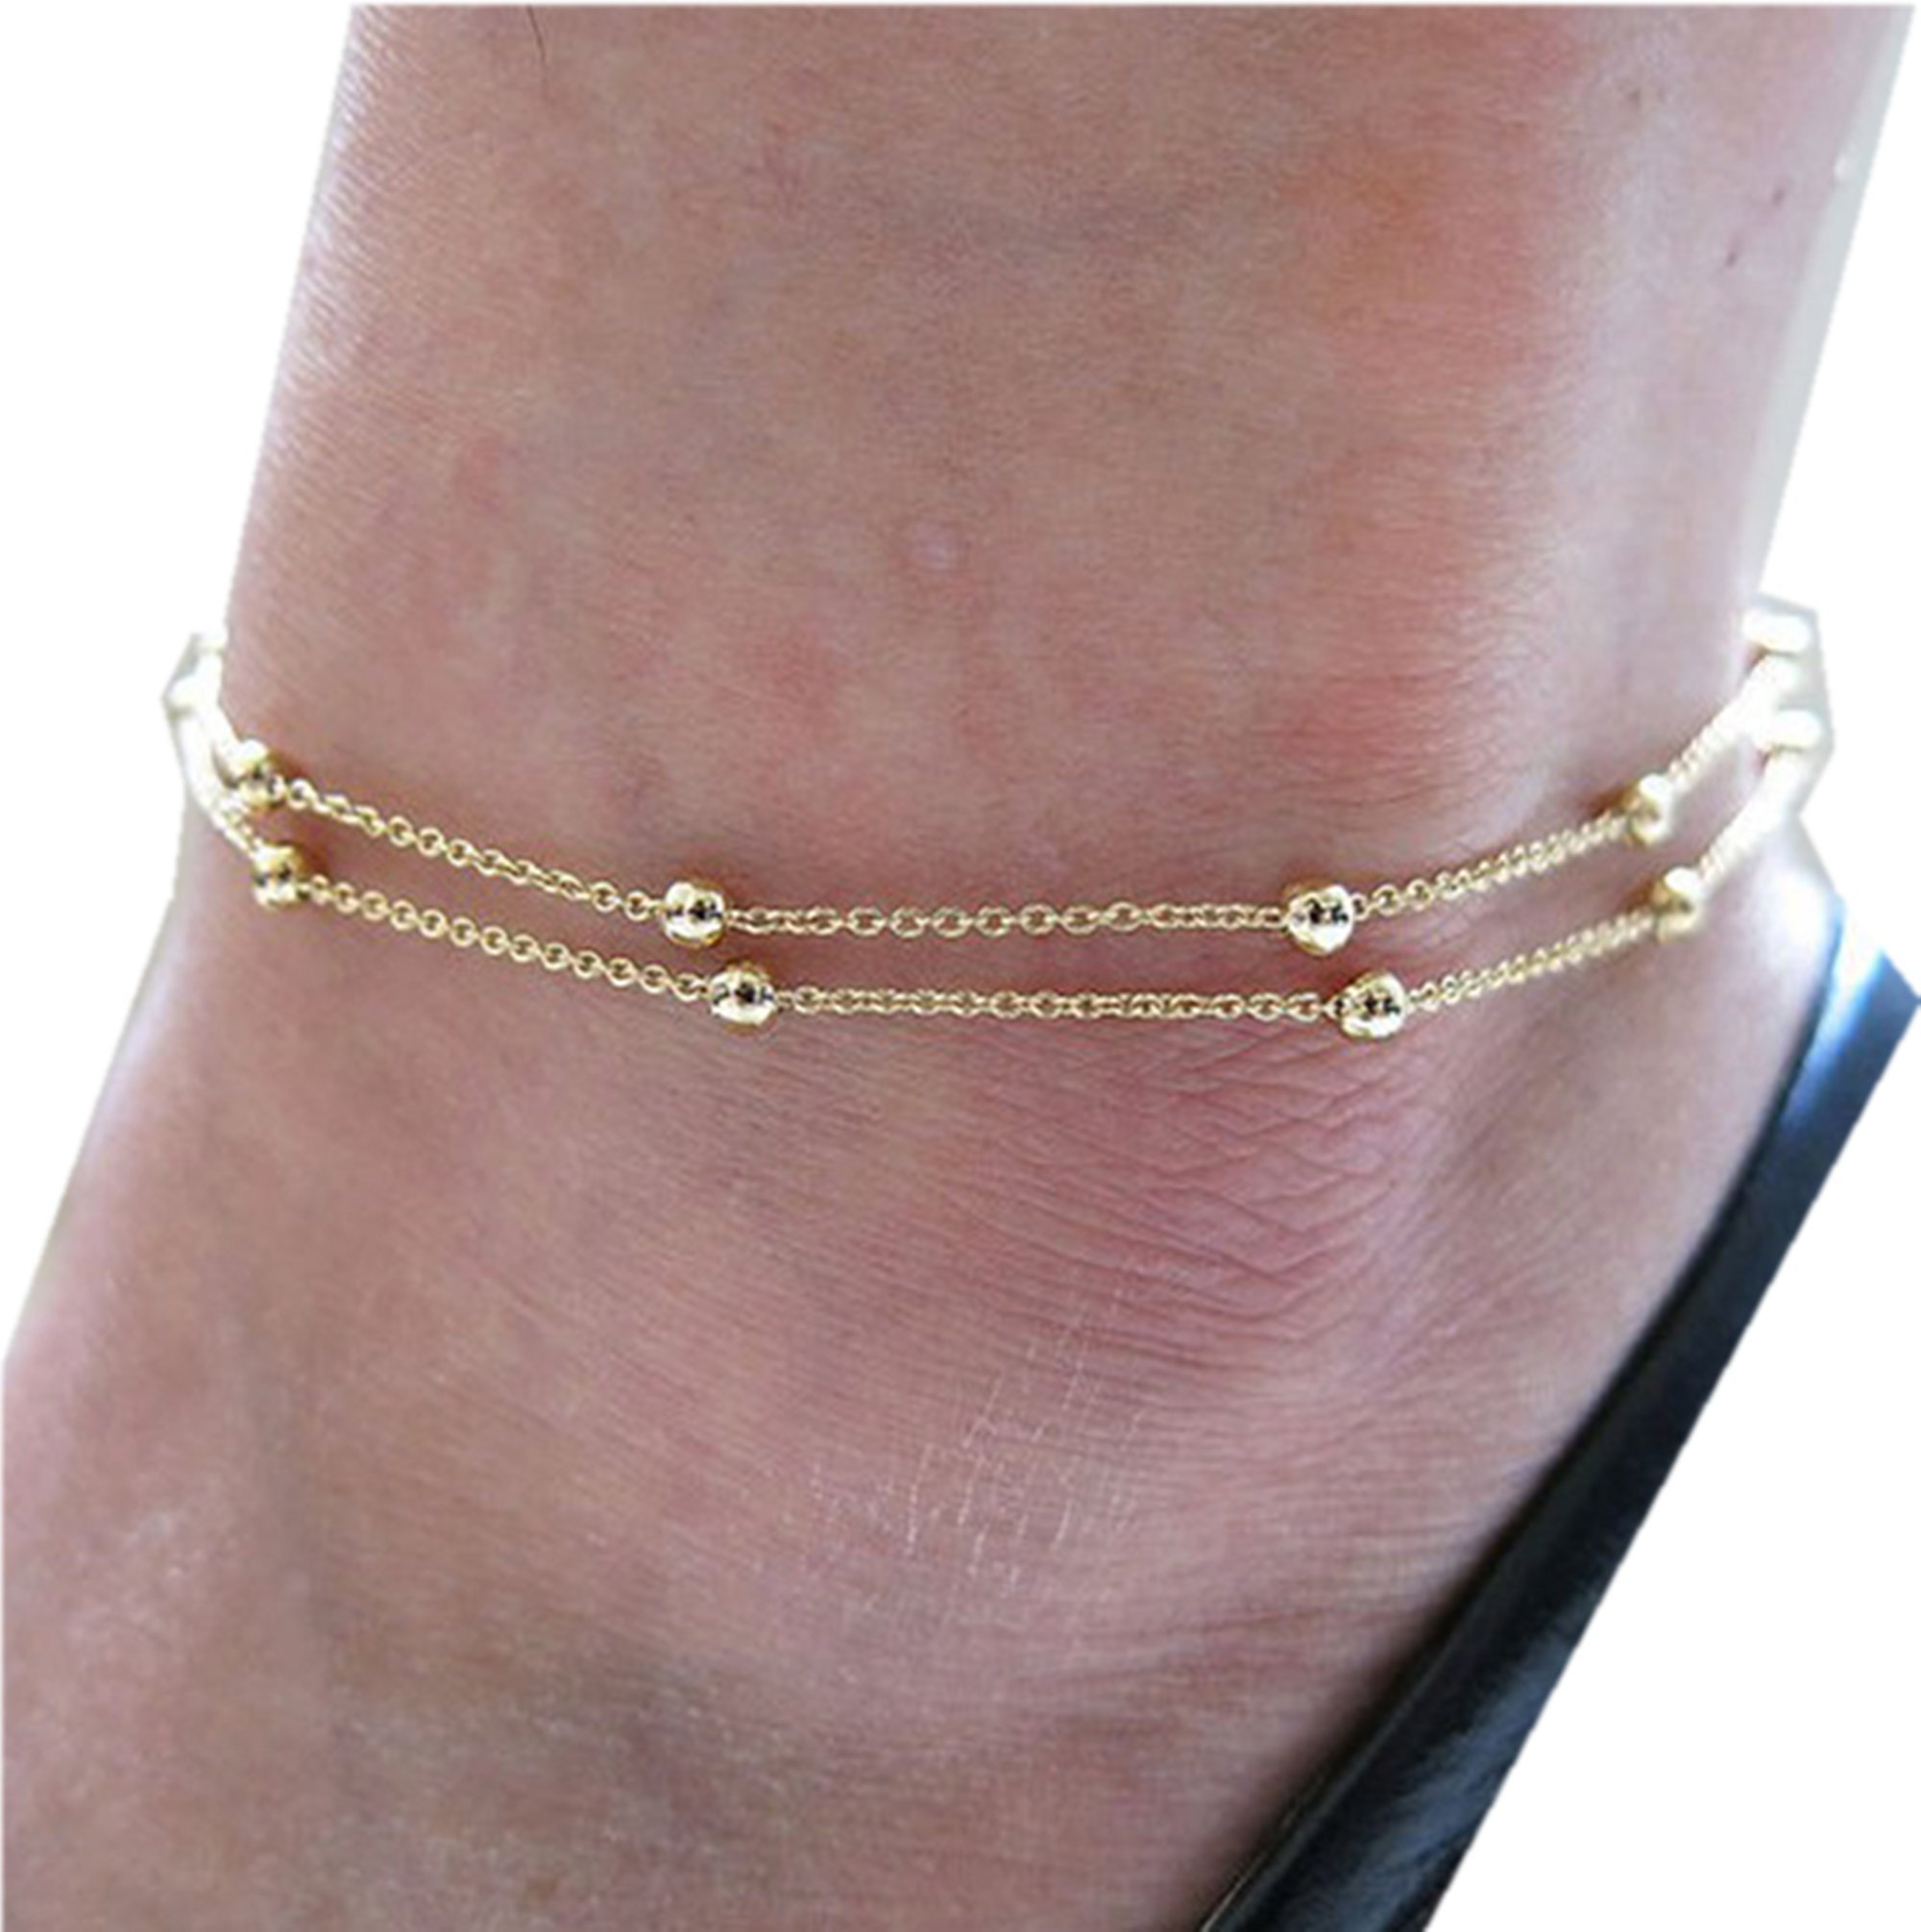 anklet bracelet best elephant bracelets lucky simple original jewelry ganesh products ankle jew friend